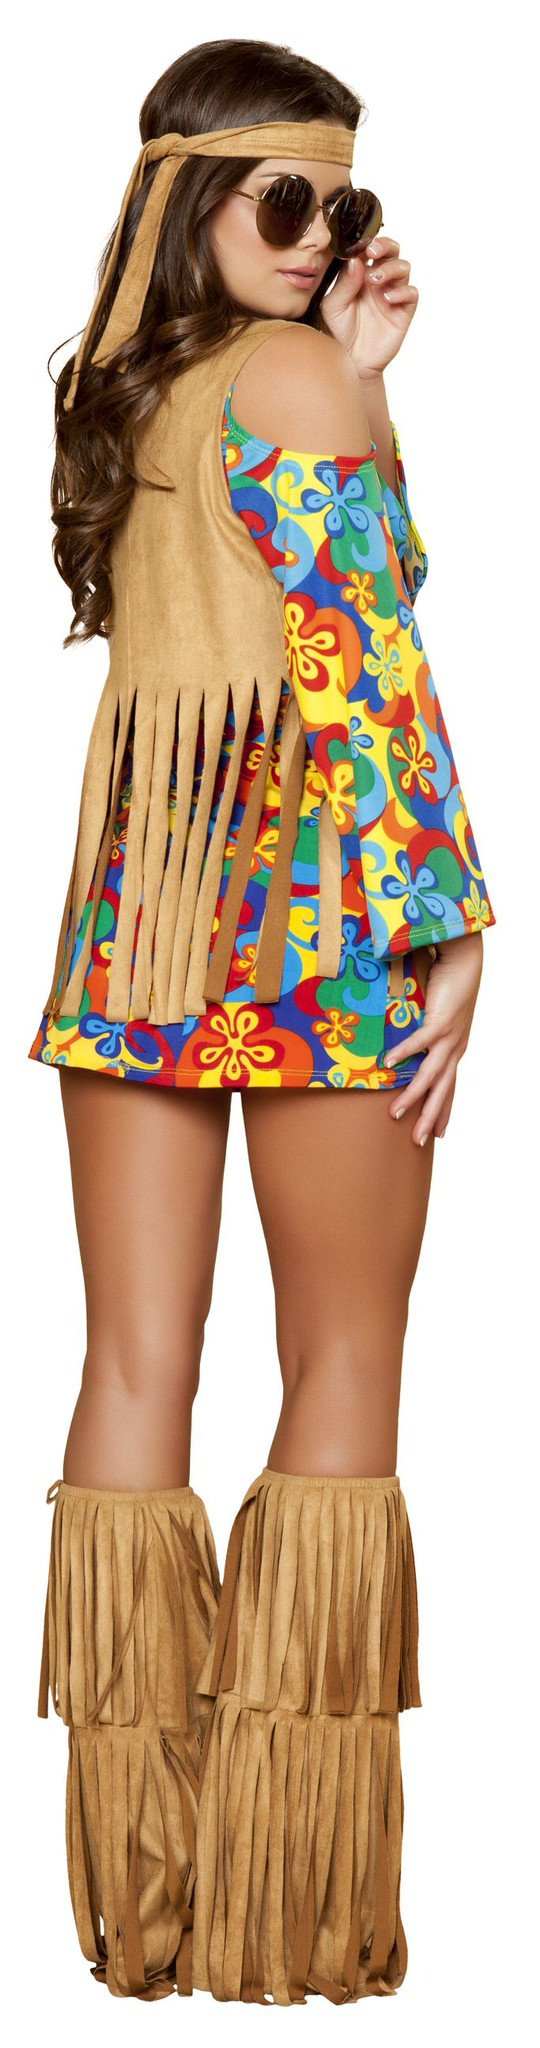 Buy 4436 - 3pc Hippie Hottie from Rave Fix for $48.75 with Same Day Shipping Designed by Roma Costume 4436-AS-S/M